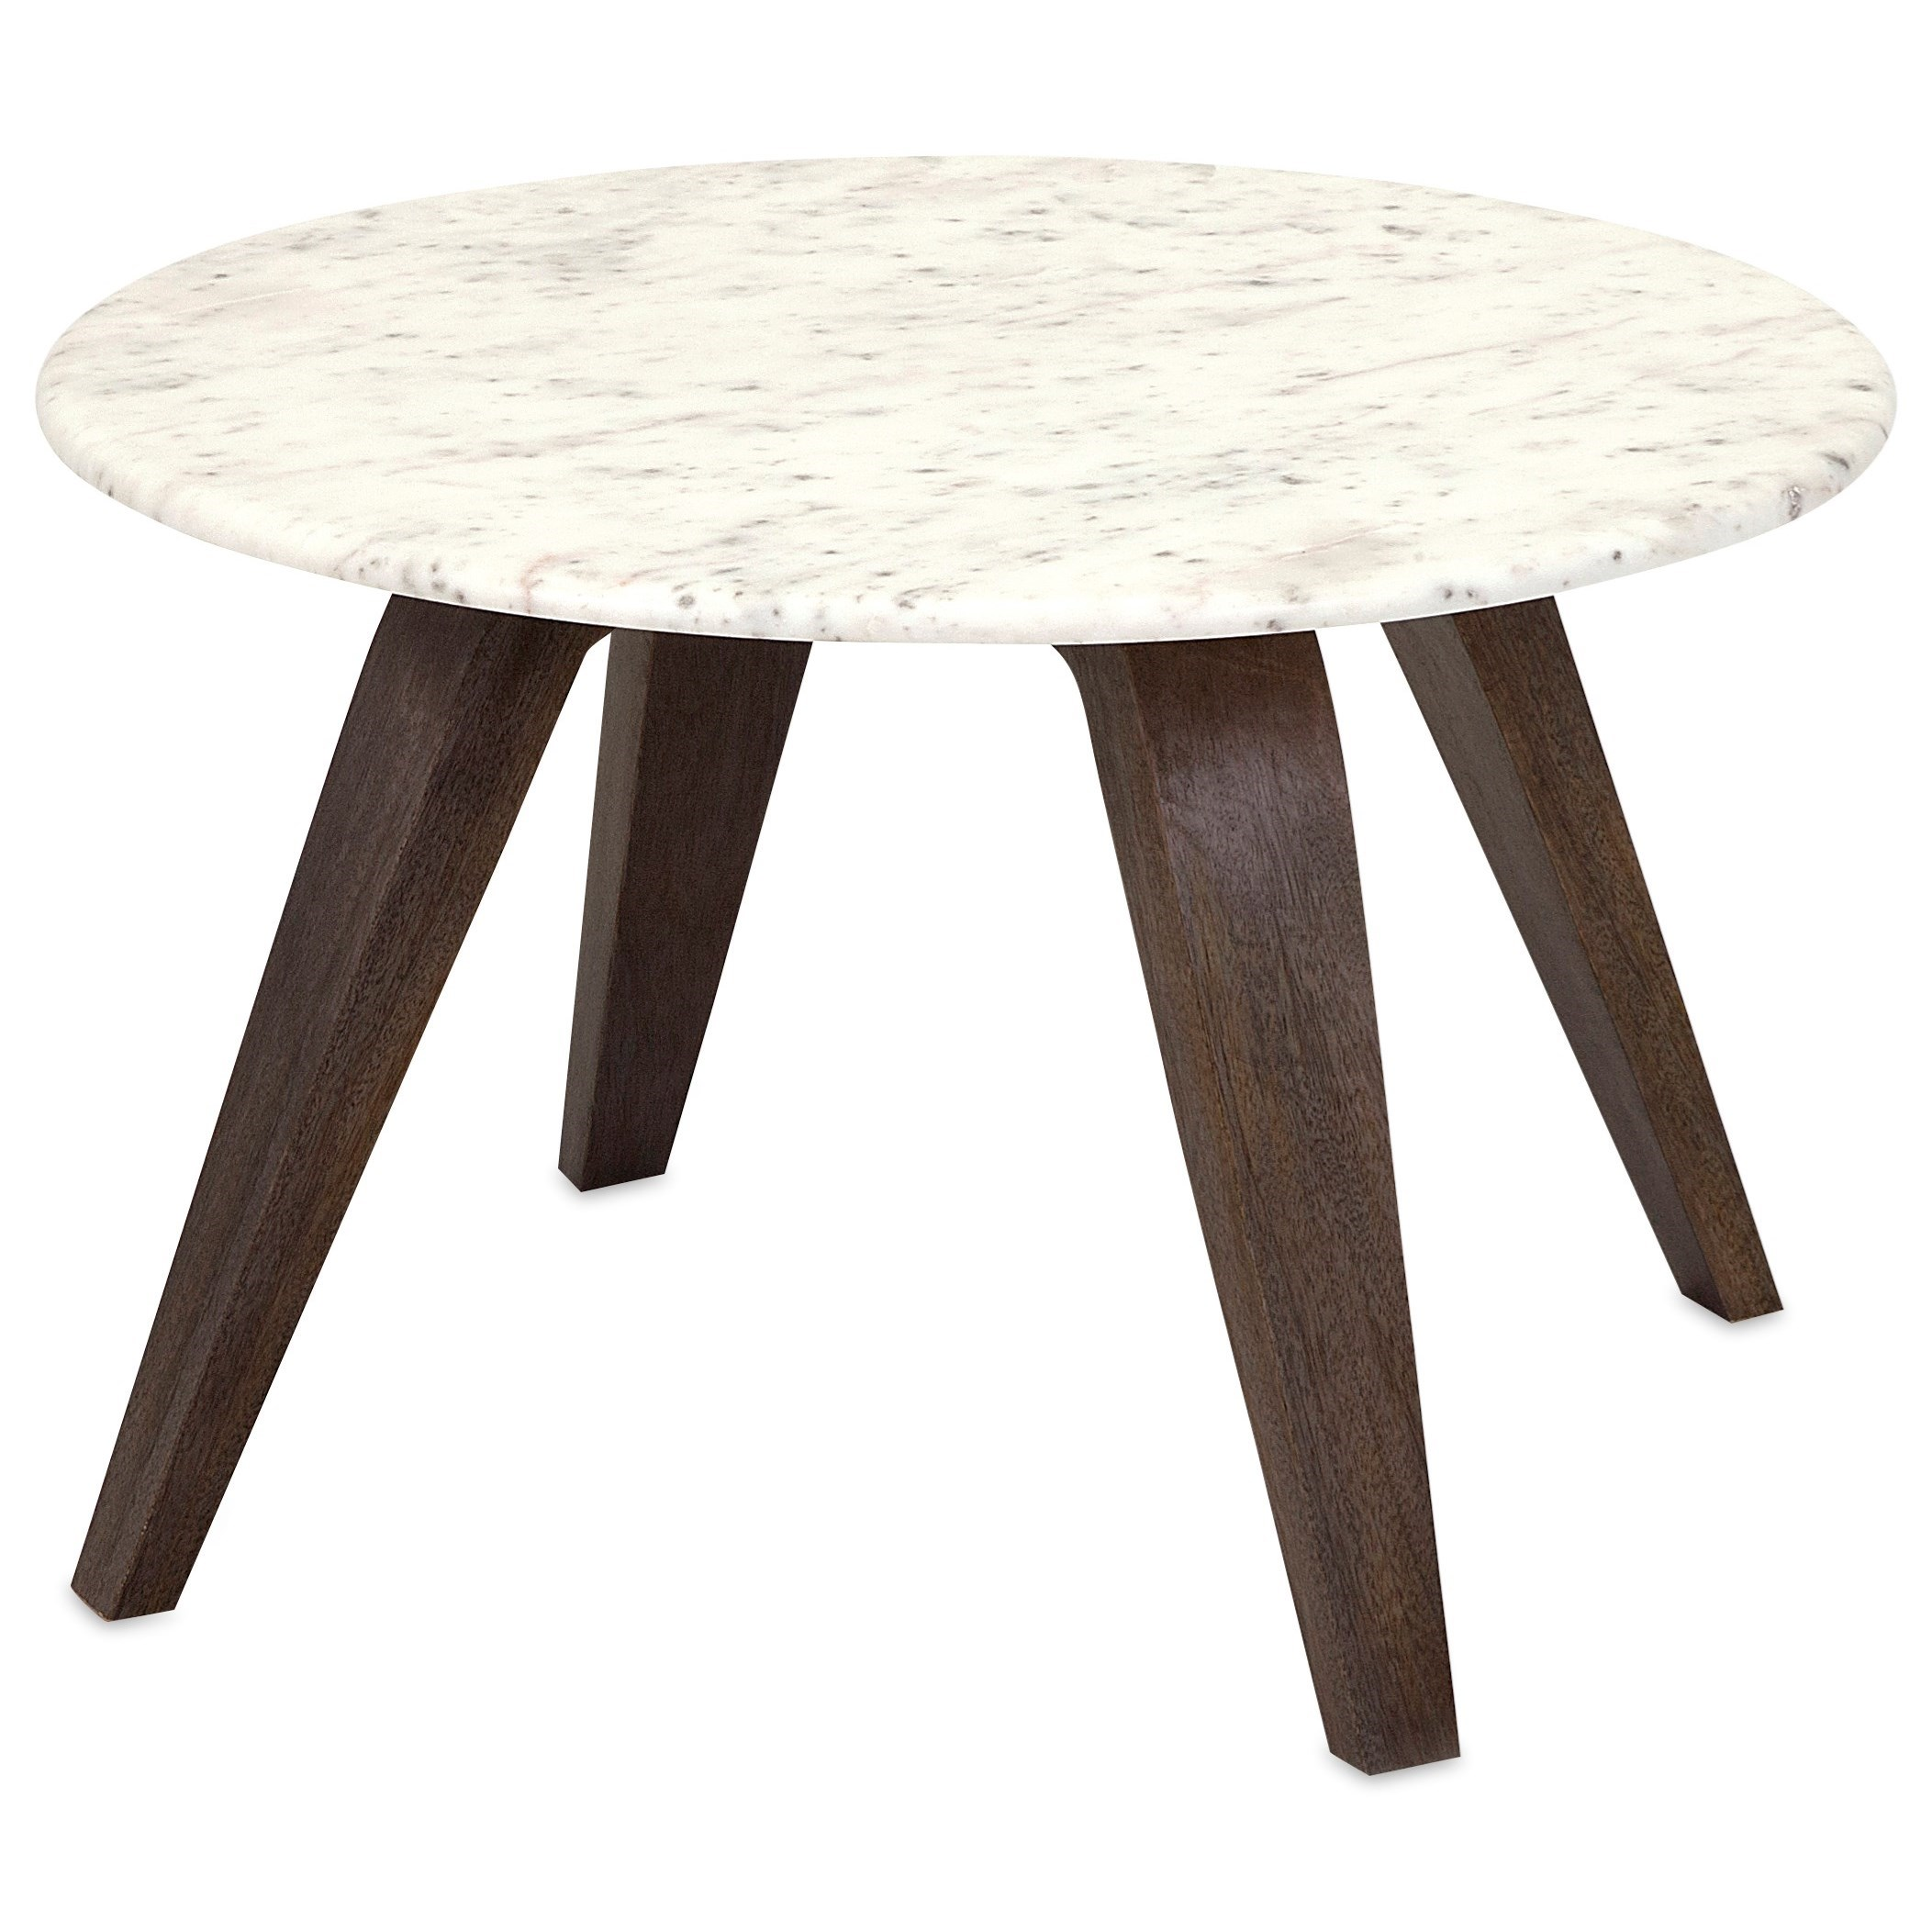 Febe Short Marble and Wood Table